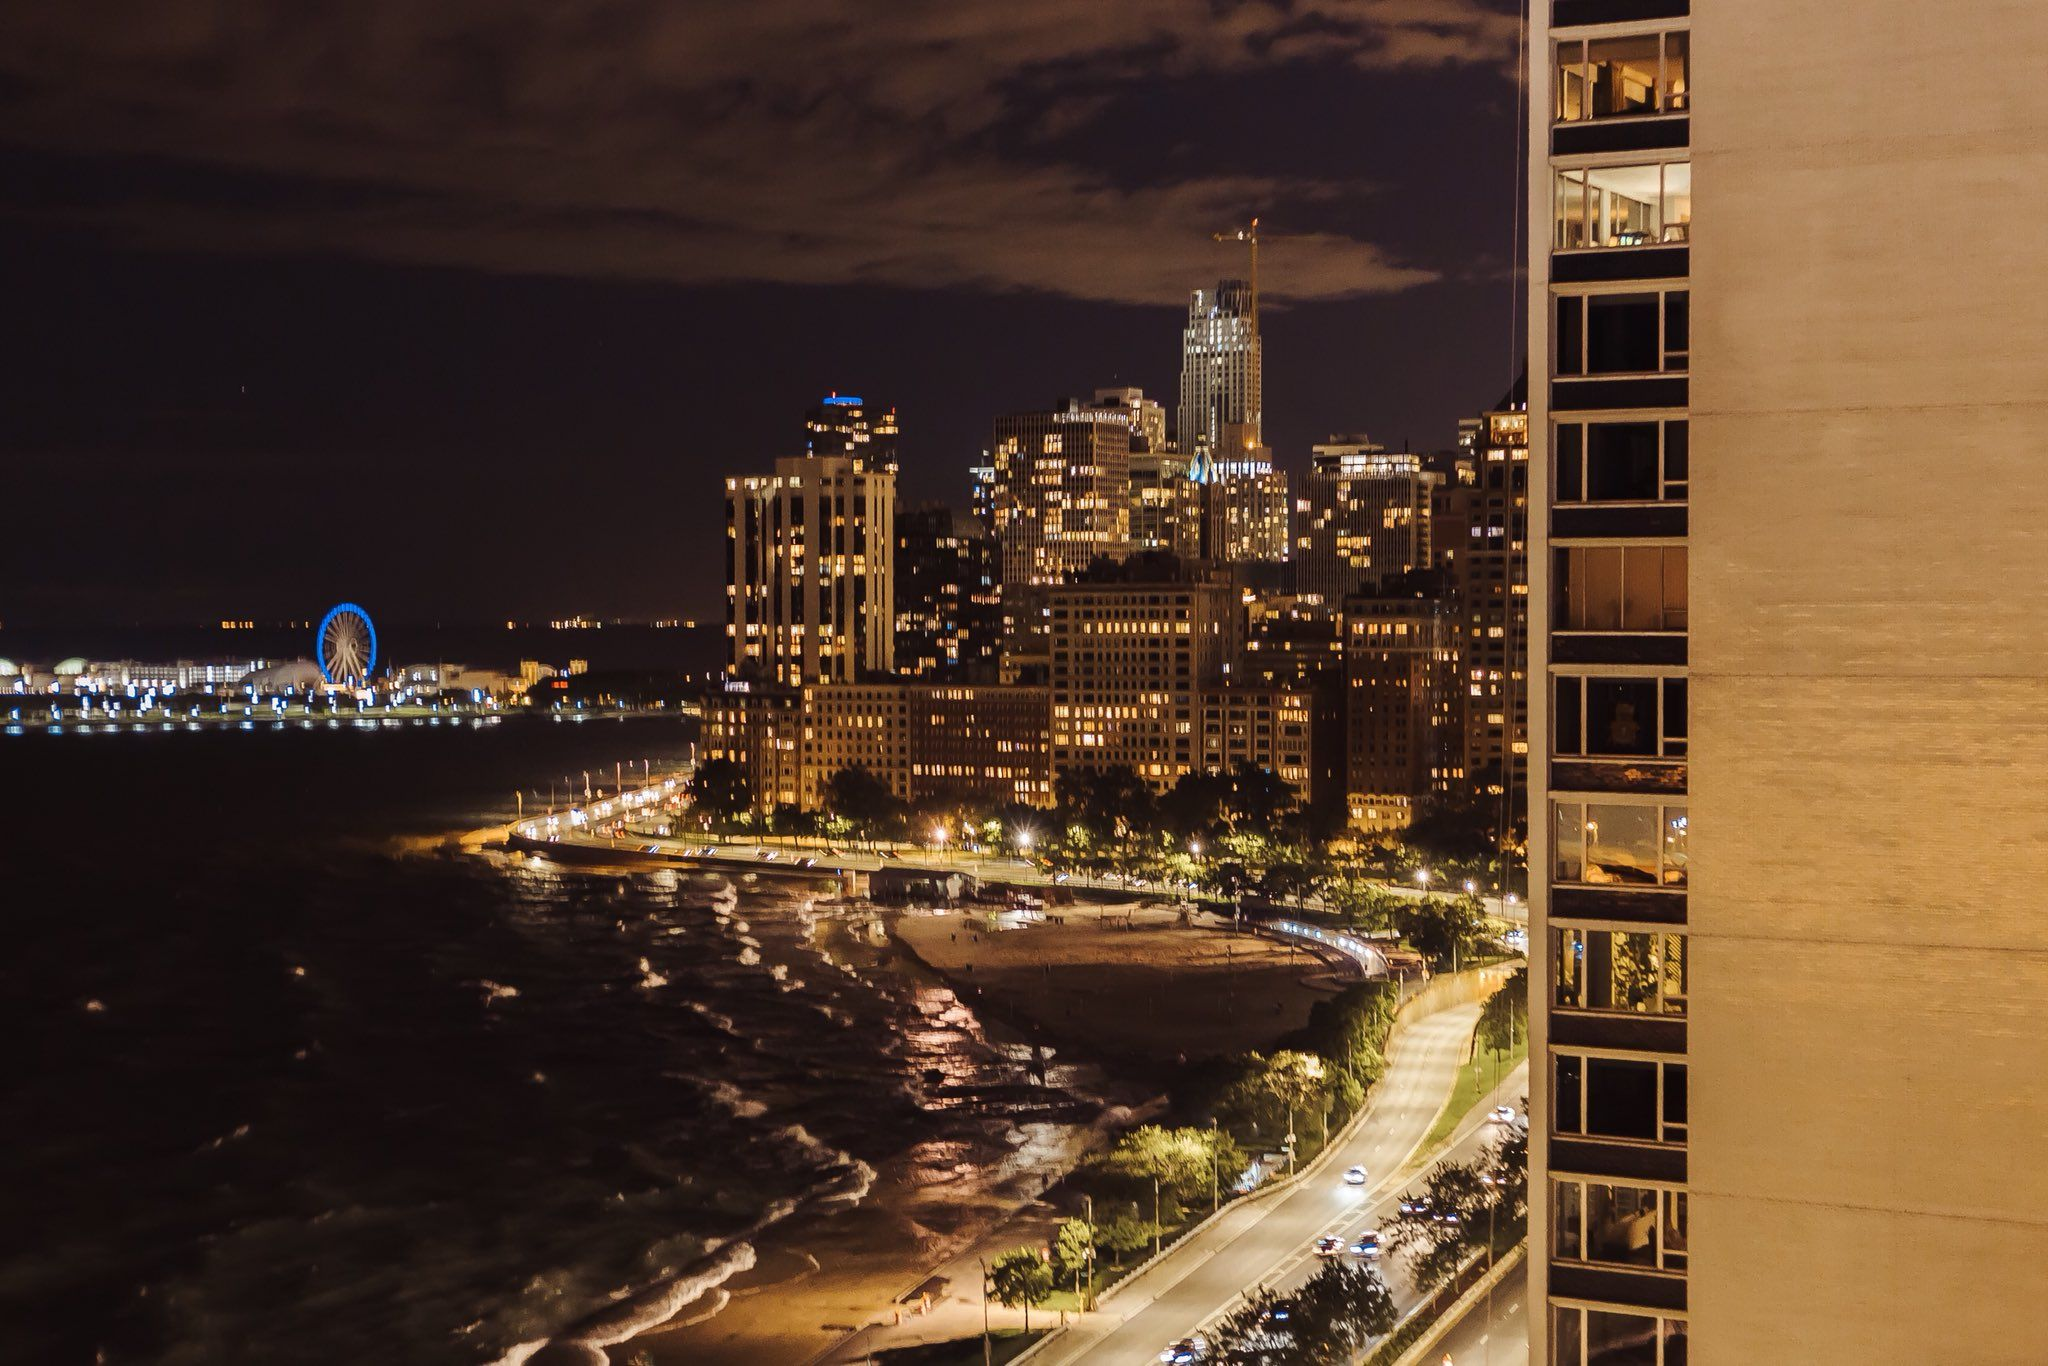 9pm in Chicago. Shot with a Canon 6D City pictures